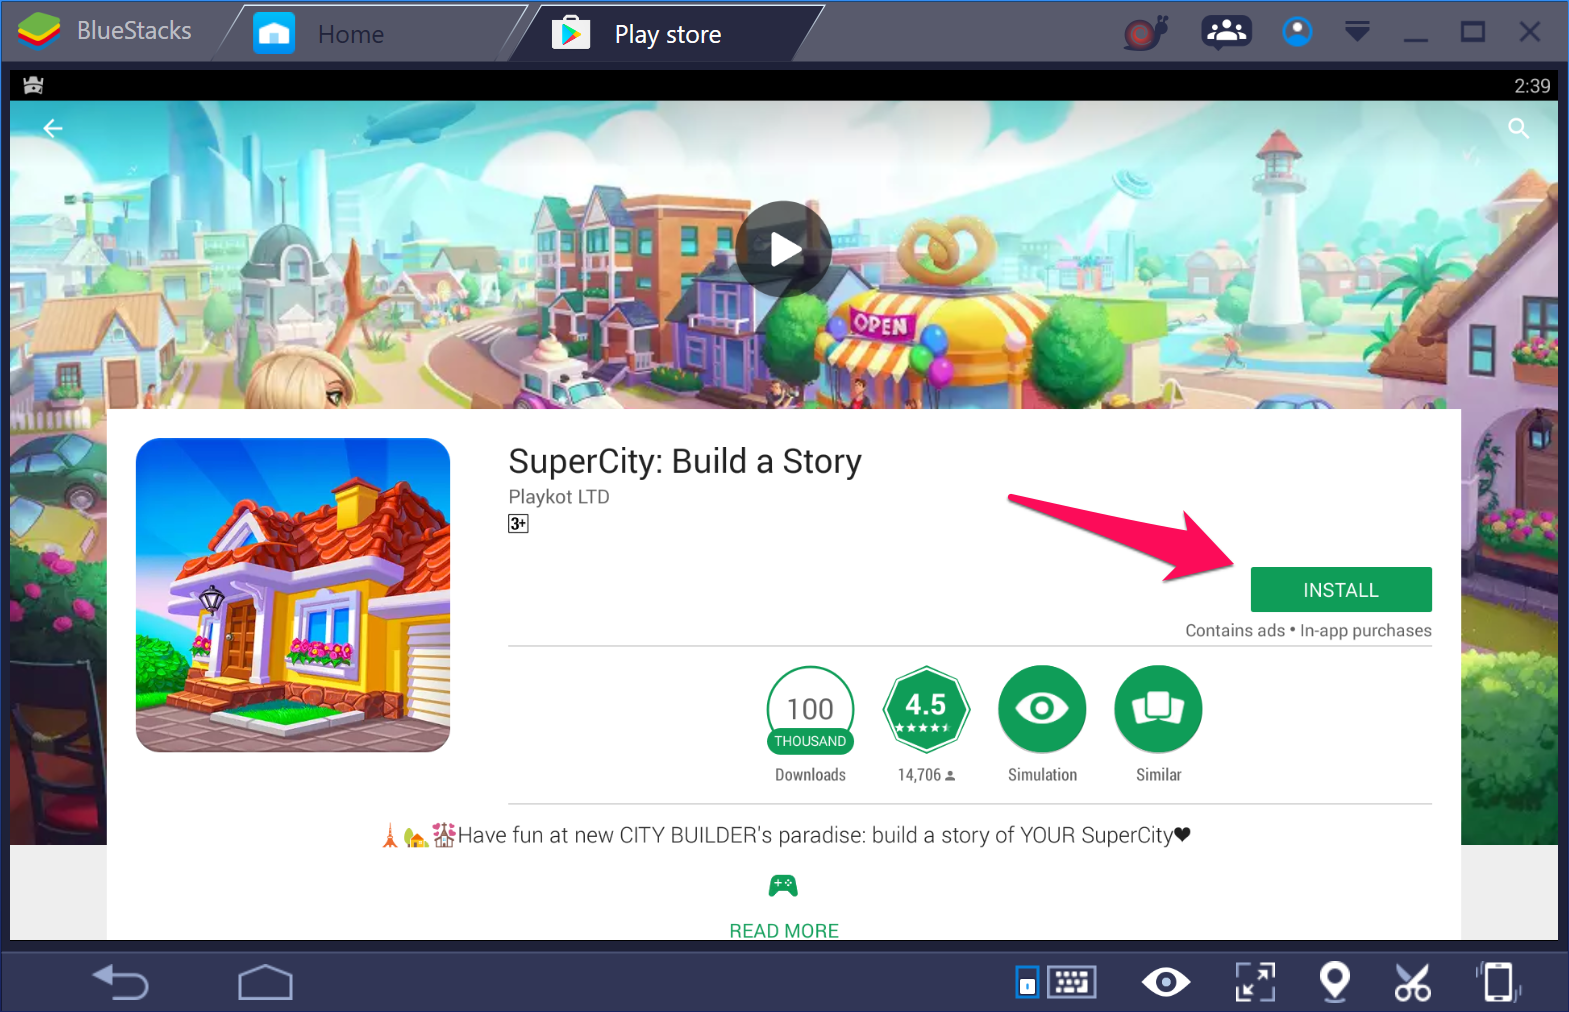 Supercity-Buid-a-story-for-Windows-10